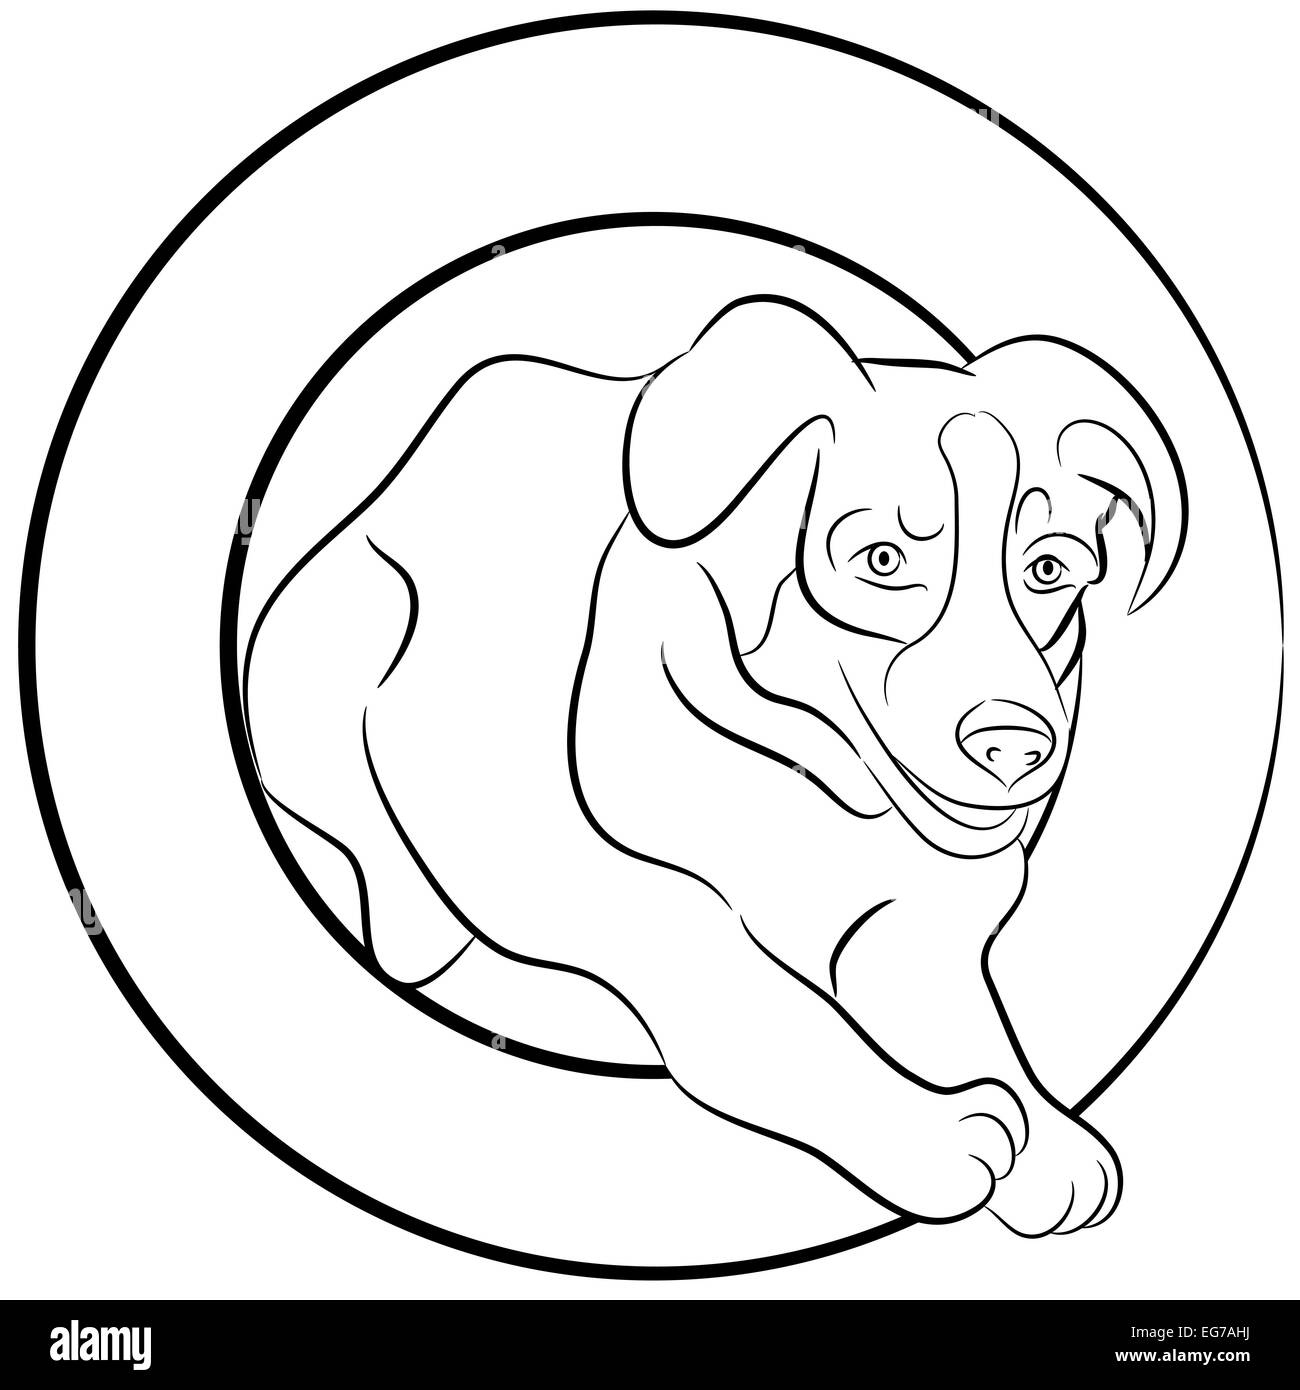 An Image Of A Border Collie Dog Jumping Through A Hoop How To Draw A Cartoon